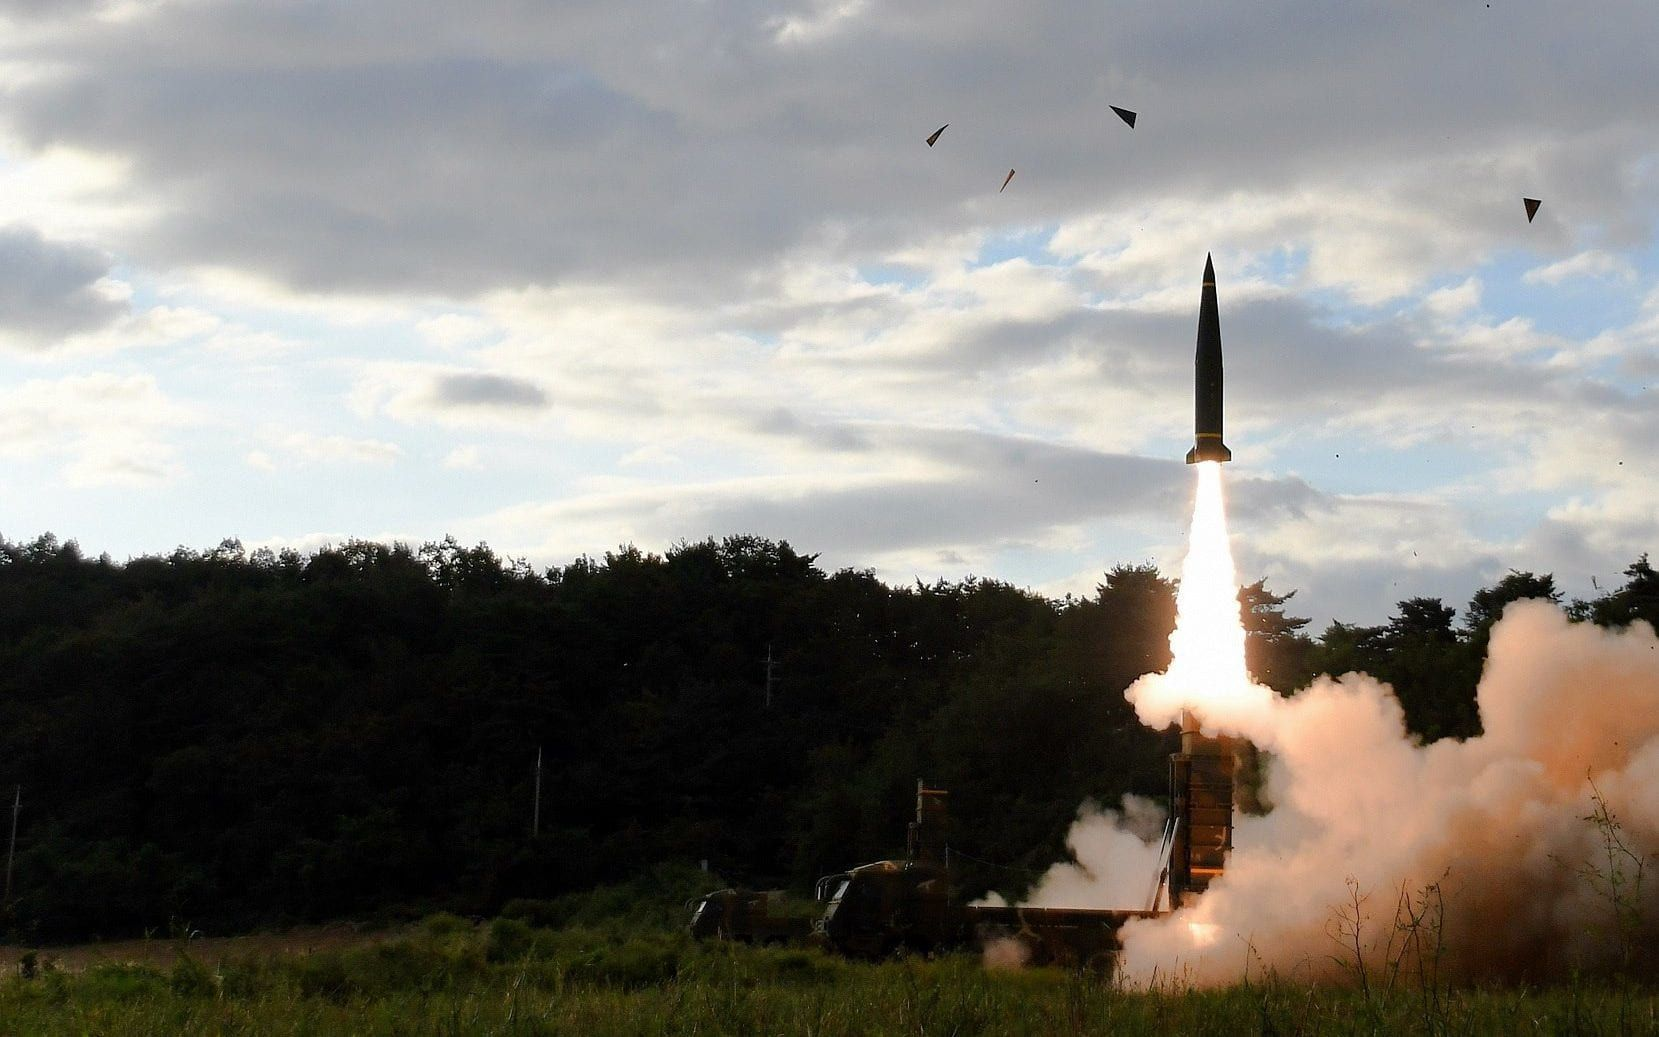 North Korea says military equilibrium with US is its final goal